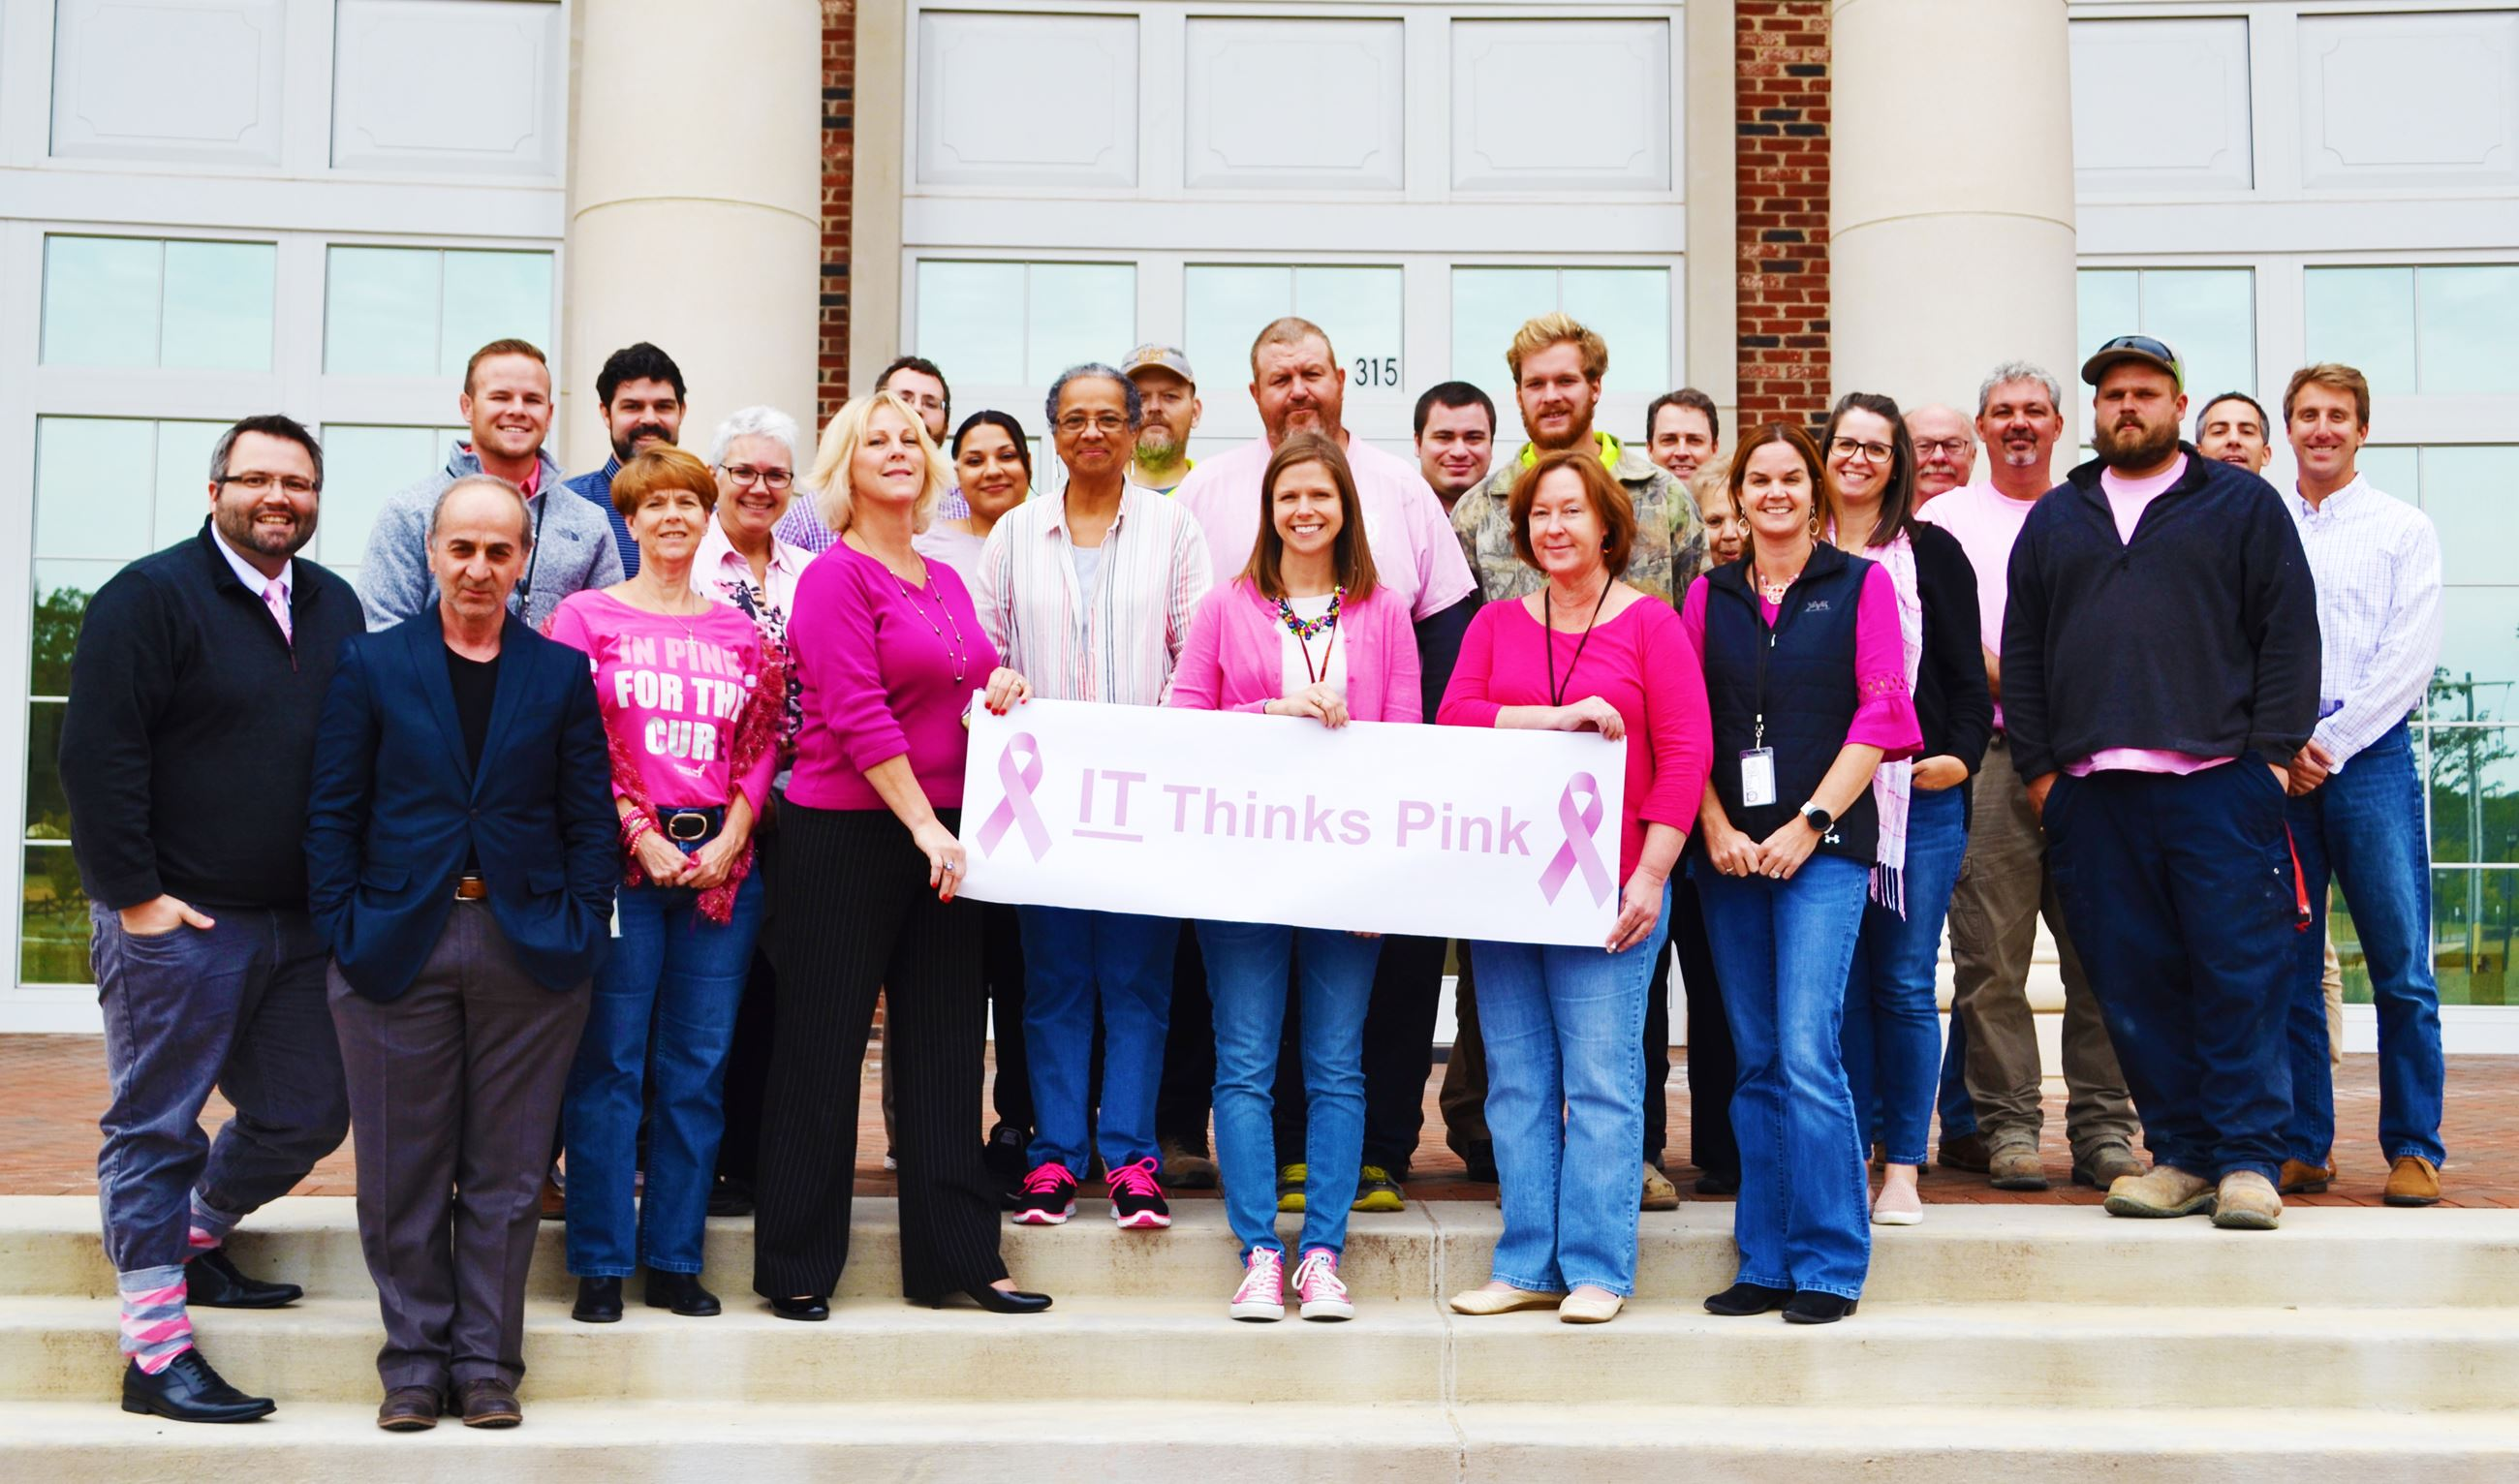 Indian Trail staff wearing their pink